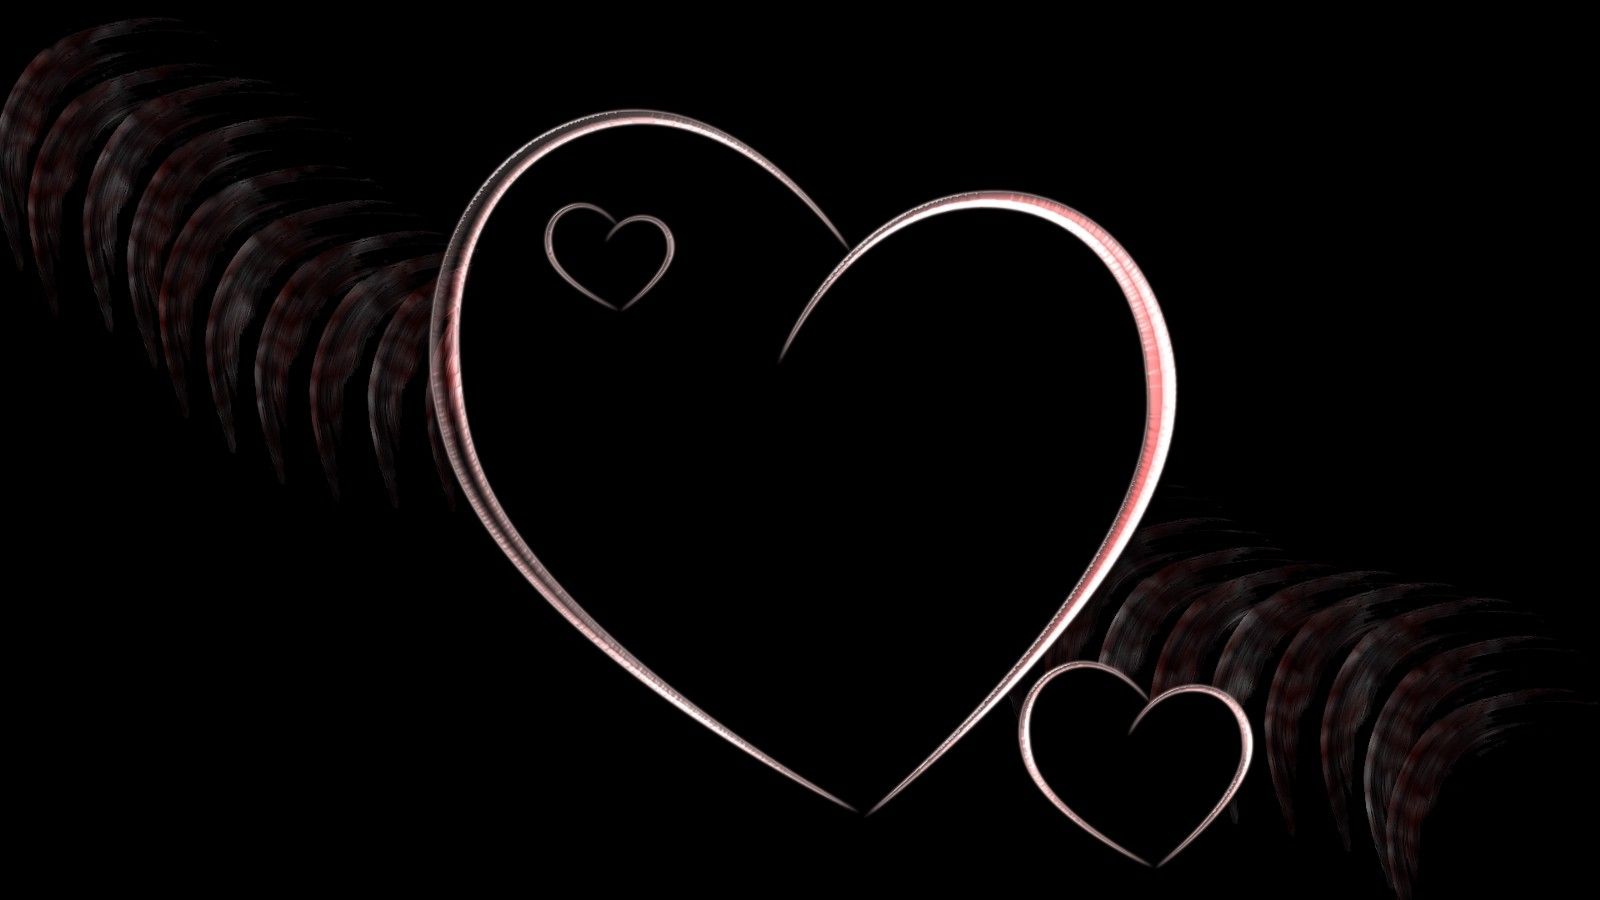 Black Love Images 32 Pictures Pictures For Any Occasion Black Background Wallpaper Black Backgrounds Black Love Heart